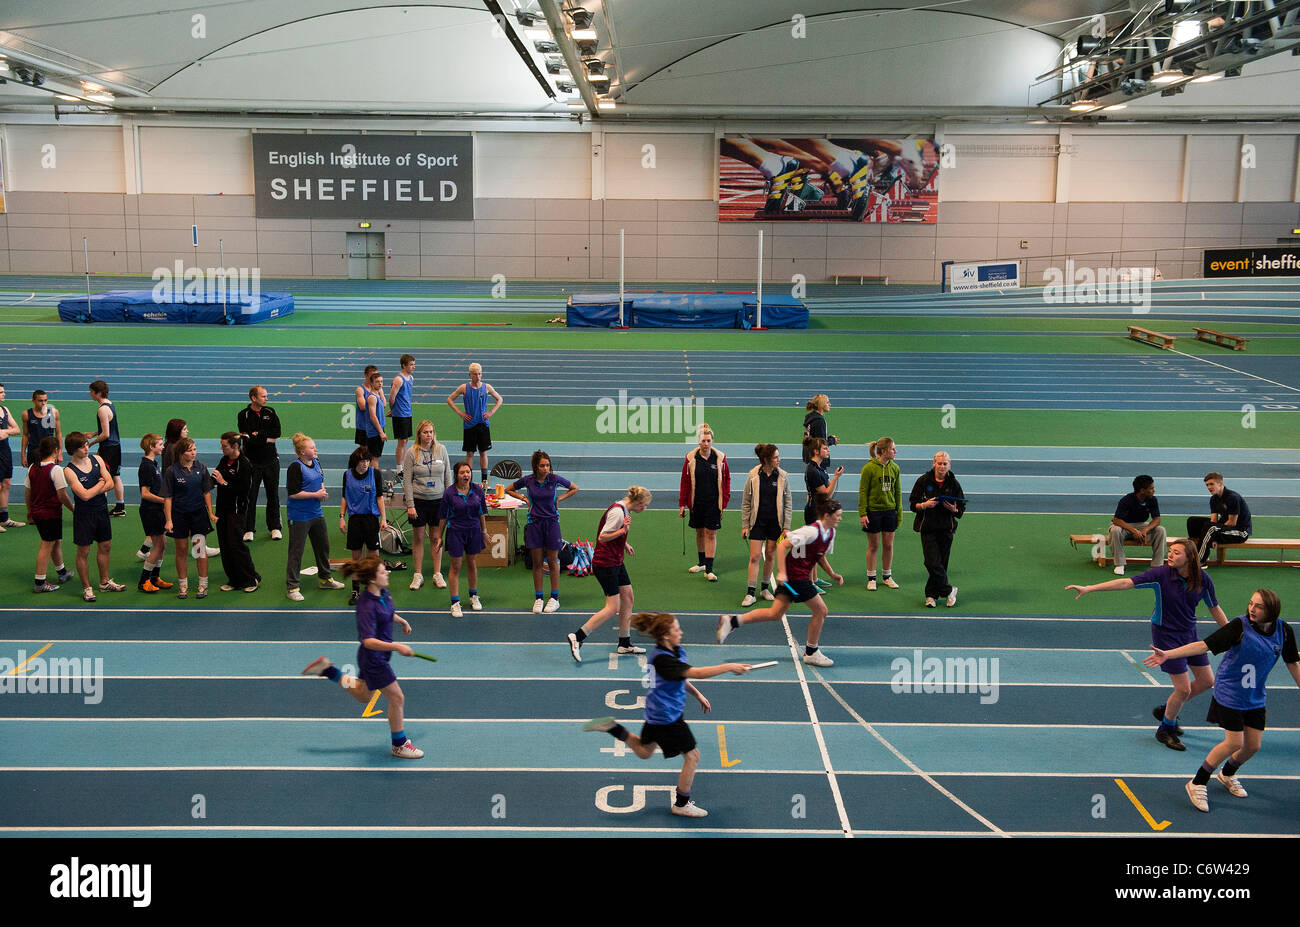 Secondary school children compete in a relay race at the English Institute of Sport in Sheffield, UK - Stock Image